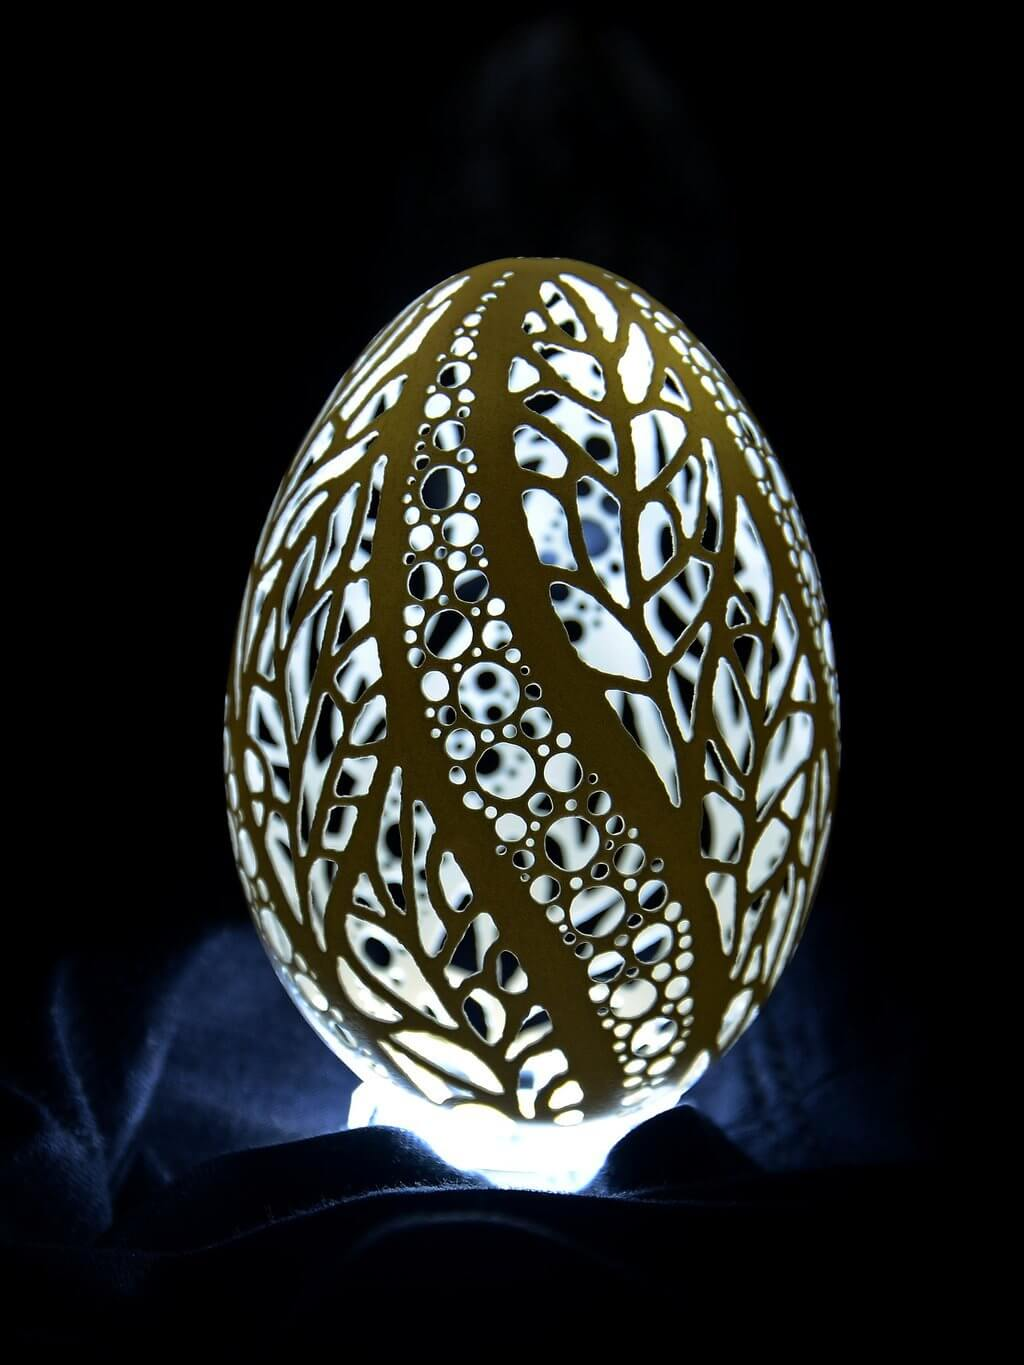 Carved eggs look great under the right light